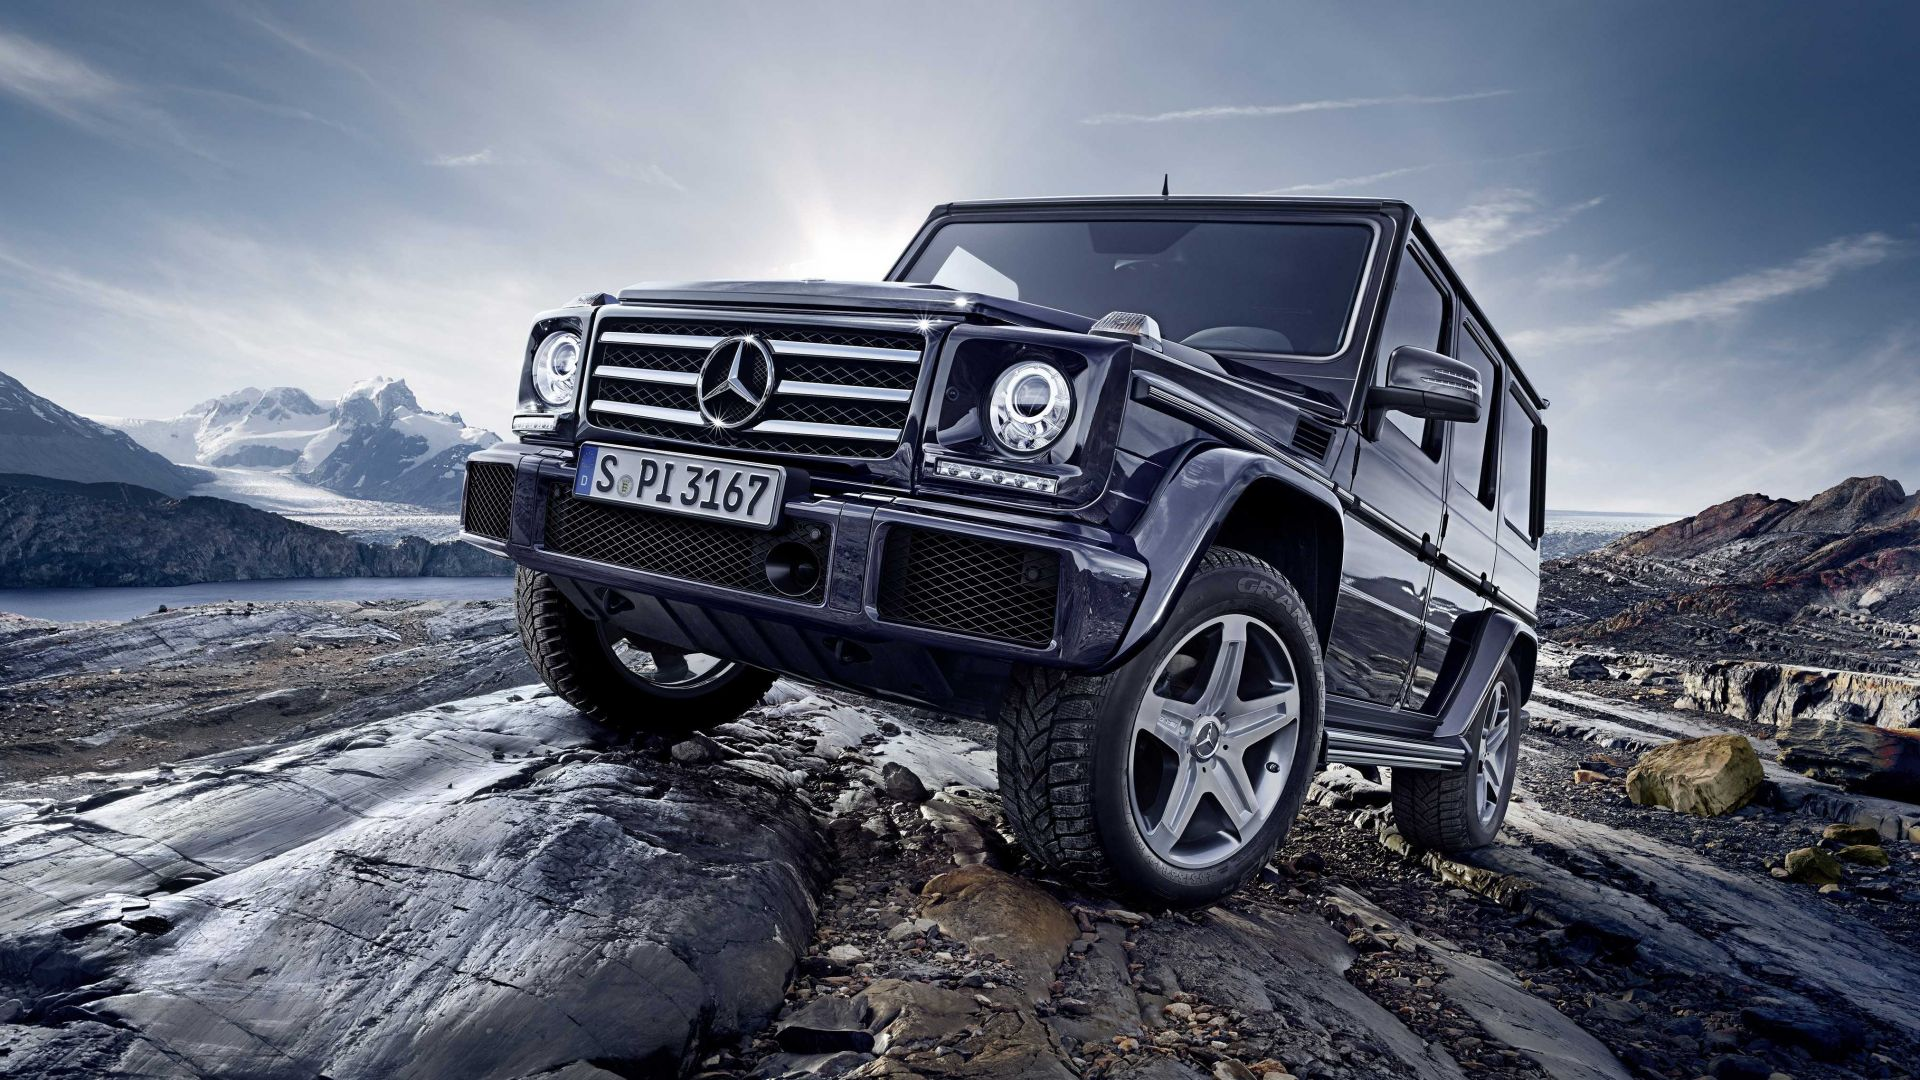 Mercedes-Benz G 500, SUV, Mercedes, G-Class, off-road, black, luxury cars (horizontal)